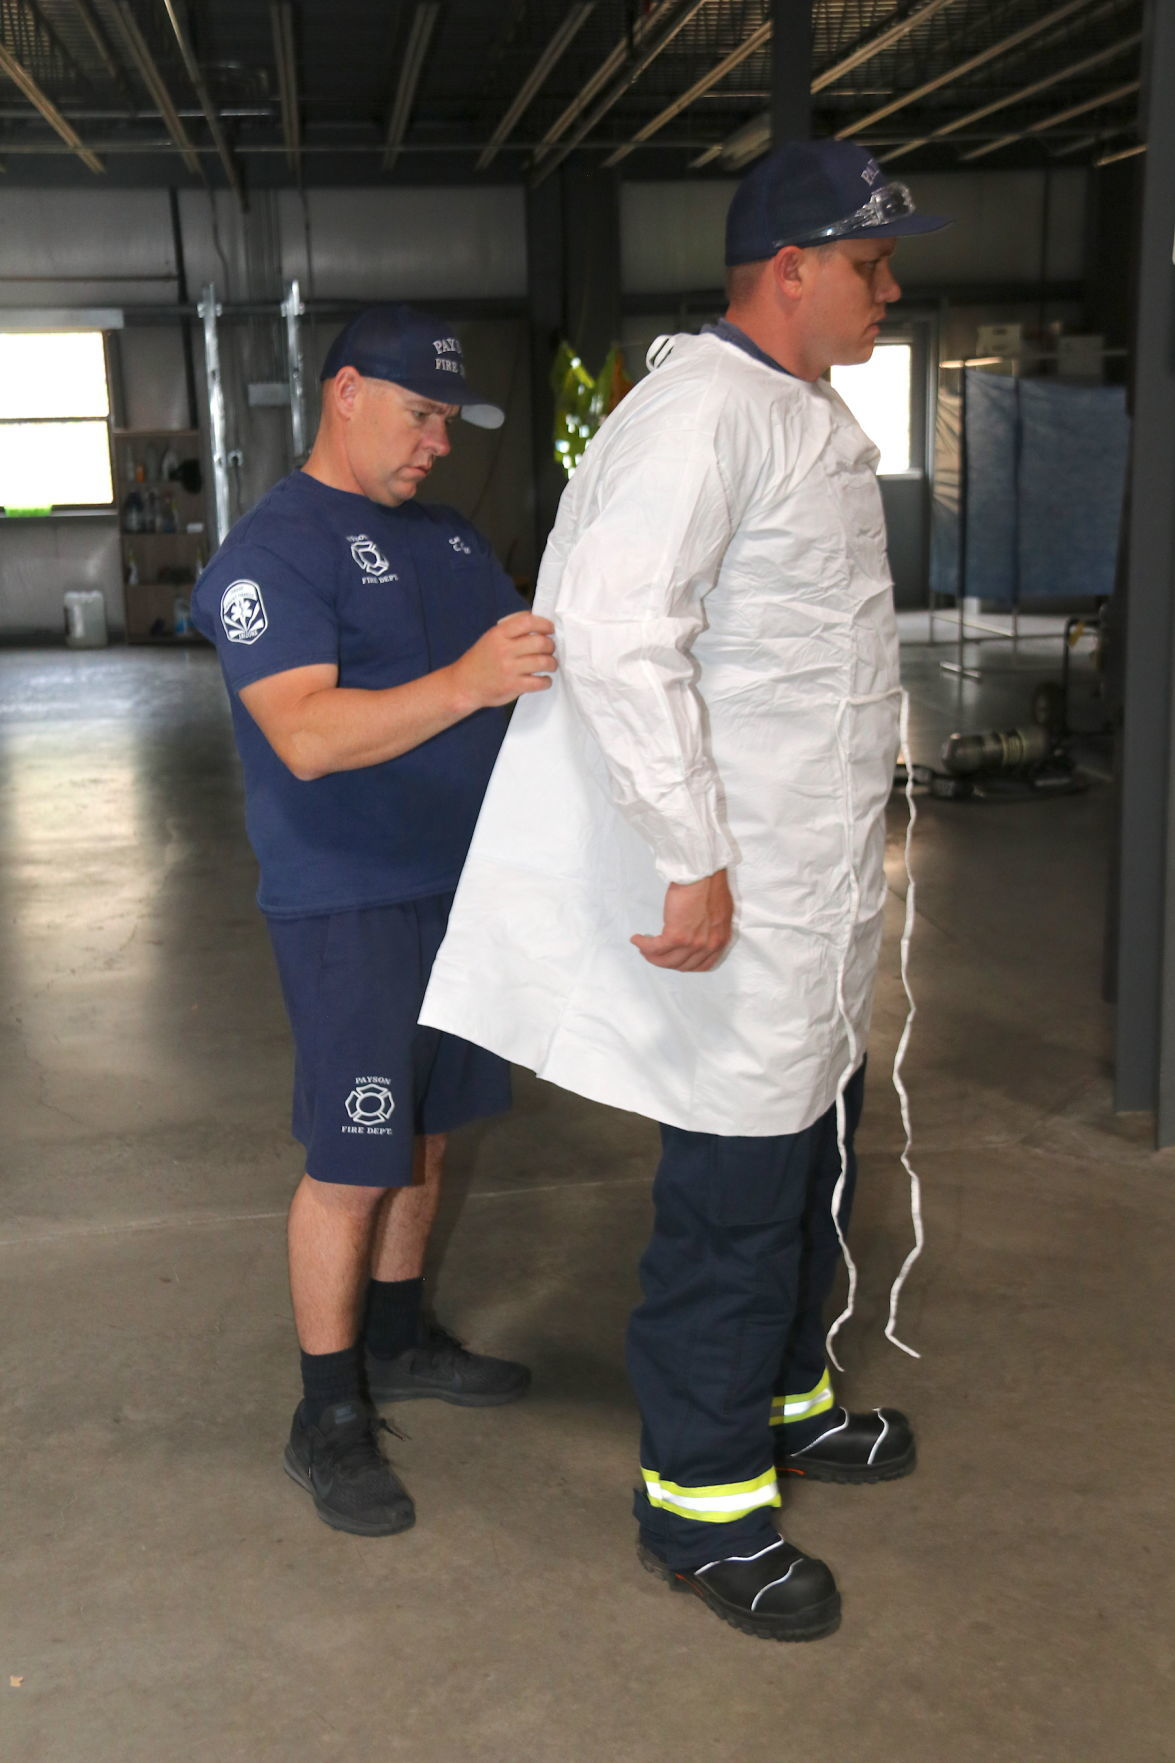 Payson fire putting on covid gear